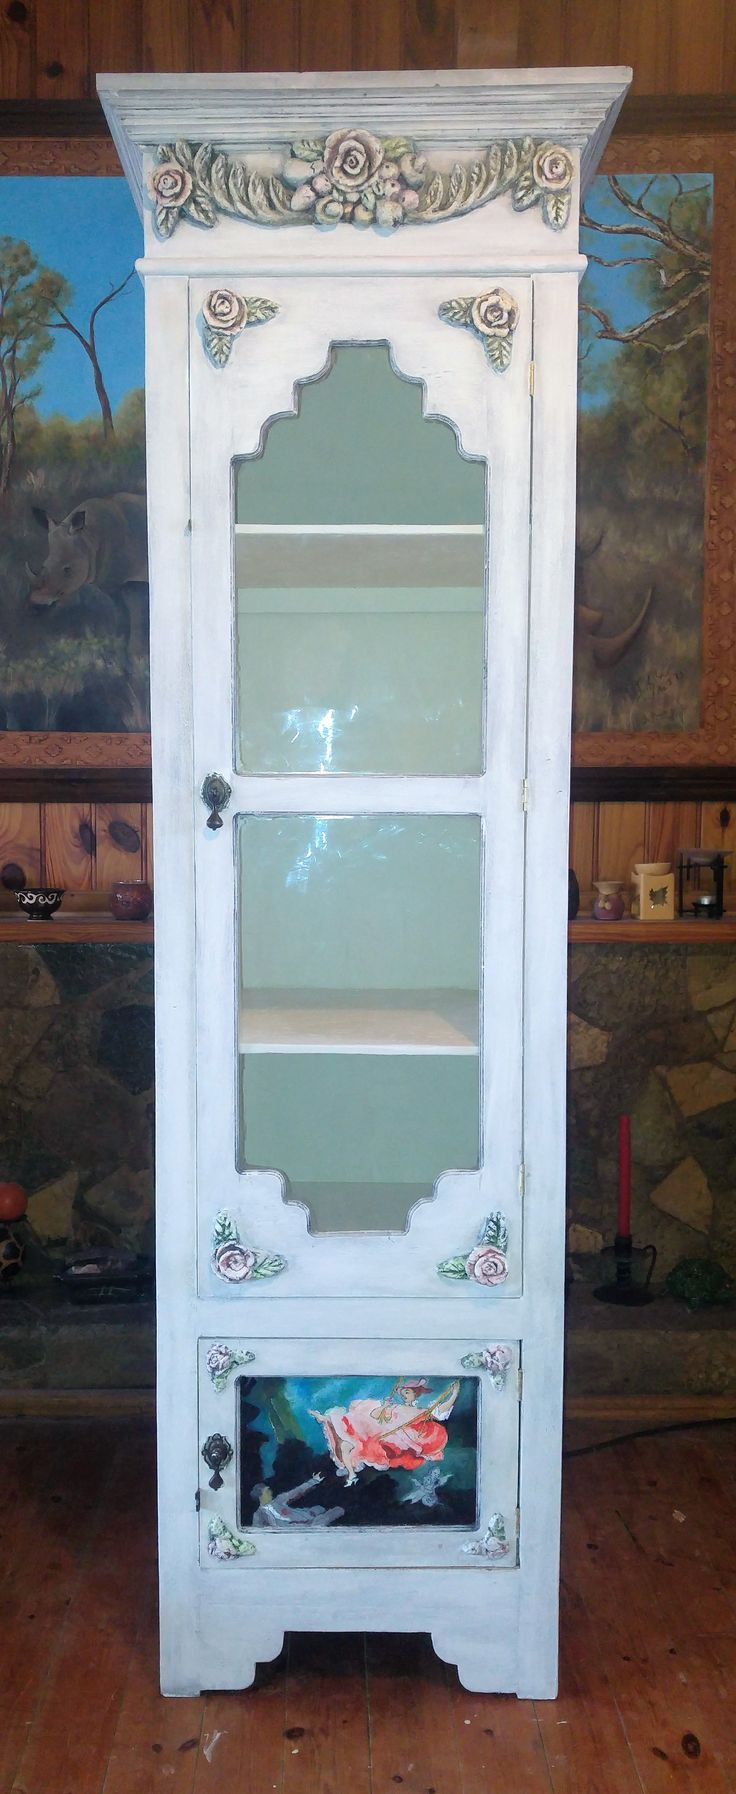 Chimney Armoire  (500 mm x 500 mm x 2000 mm approximately) Price: R6200.00 The beautiful two meter High cupboard will bring elegance to any room. Feature a glass door with 4 shelves above and a little compartment at the bottom. Can be fitted with glass or painted panel to fit you requirements. Painted panels are priced individually. This cupboard will be just as charming in your bathroom and kitchen as it in the lounge or dining room.